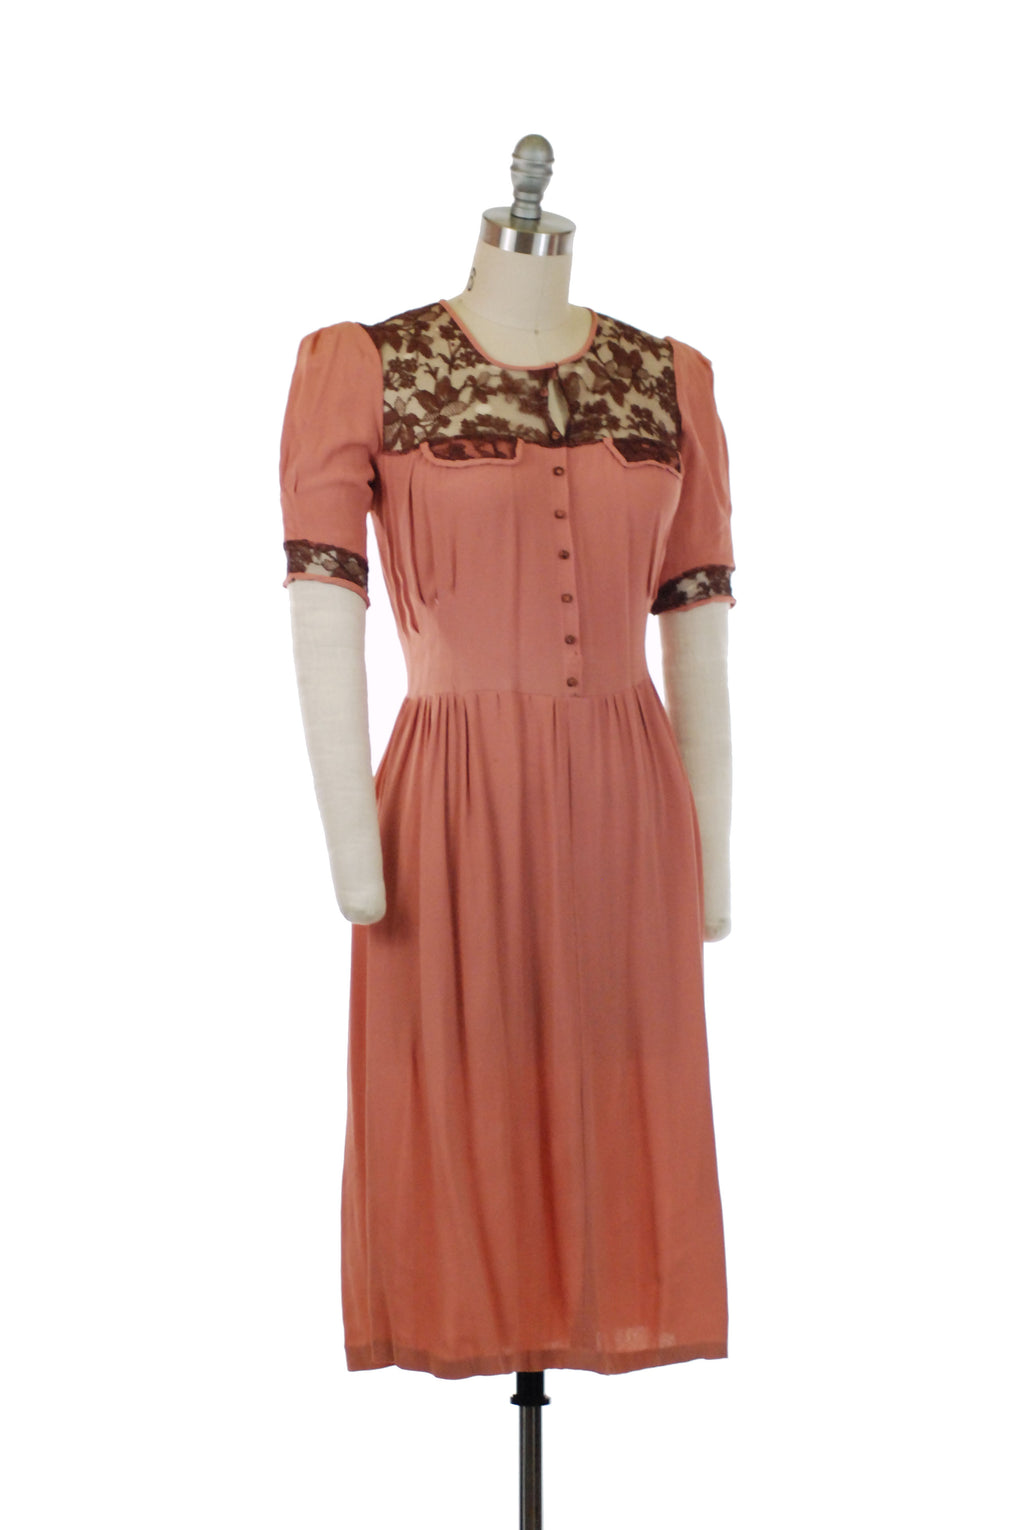 Lovely Late 1930s or Early 1940s Dress Set in Rose Pink Rayon with Brown Lace